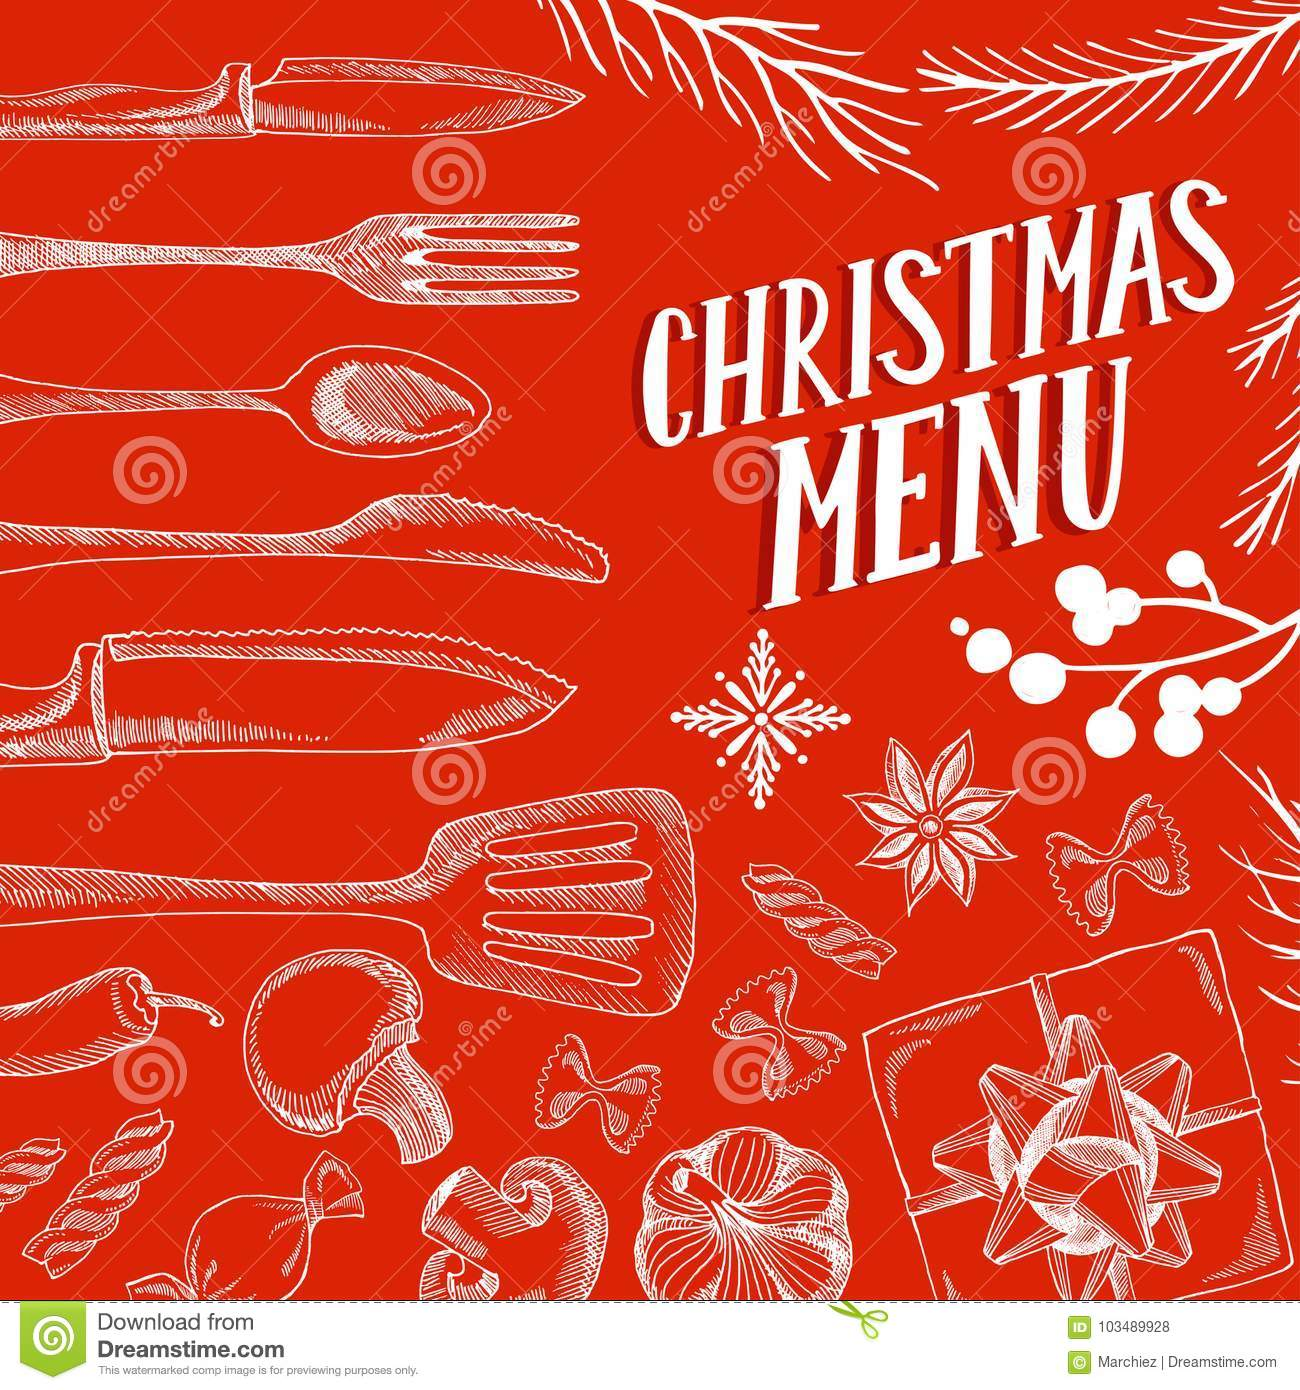 christmas menu food template for restaurant stock vector